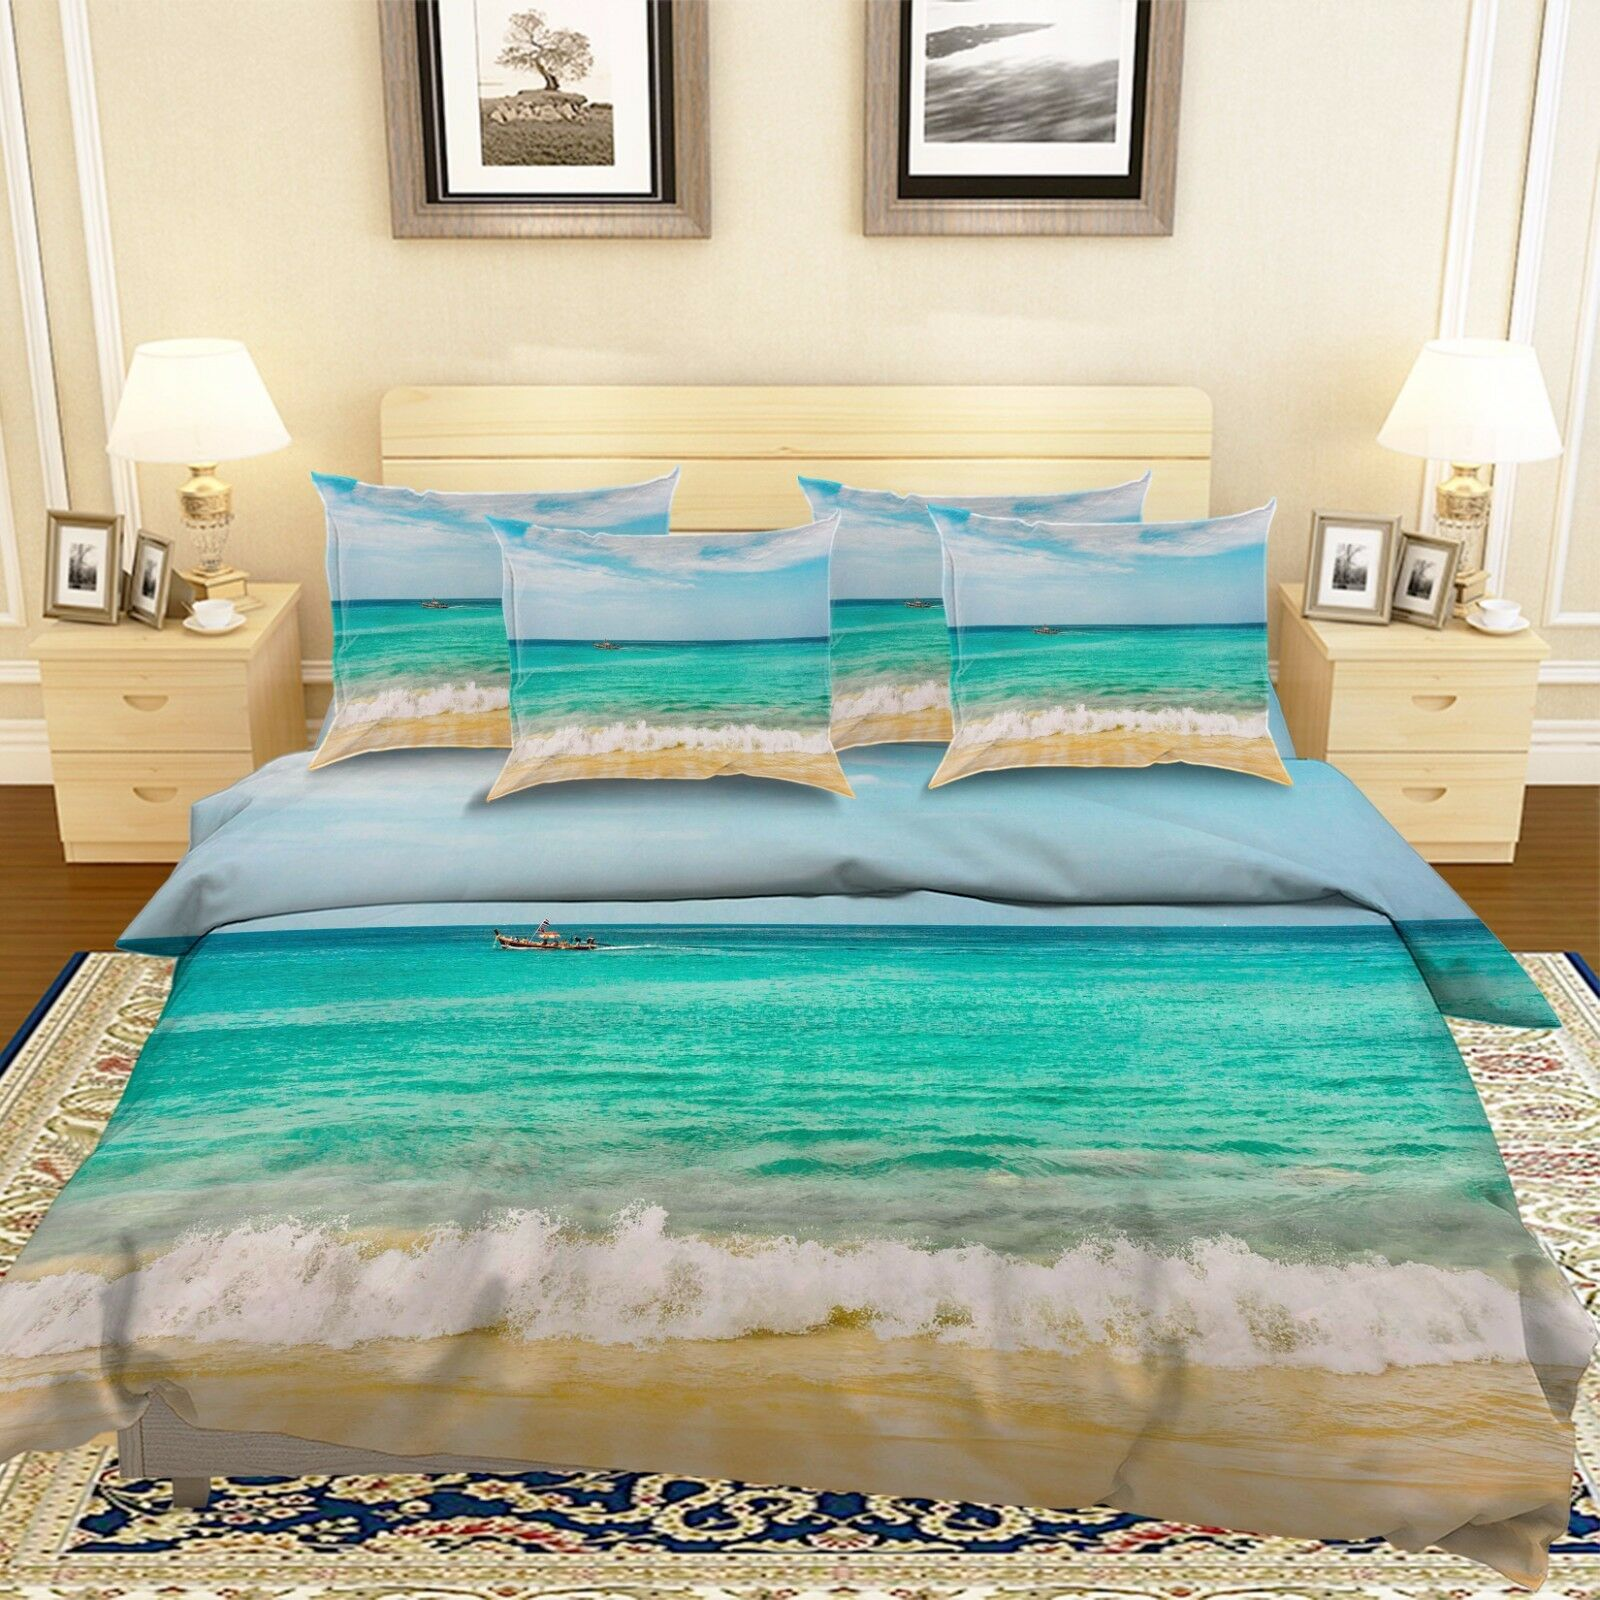 3D Boat Sea Beach 75 Bed Pillowcases Quilt Duvet Cover Set Single Queen AU Lemon